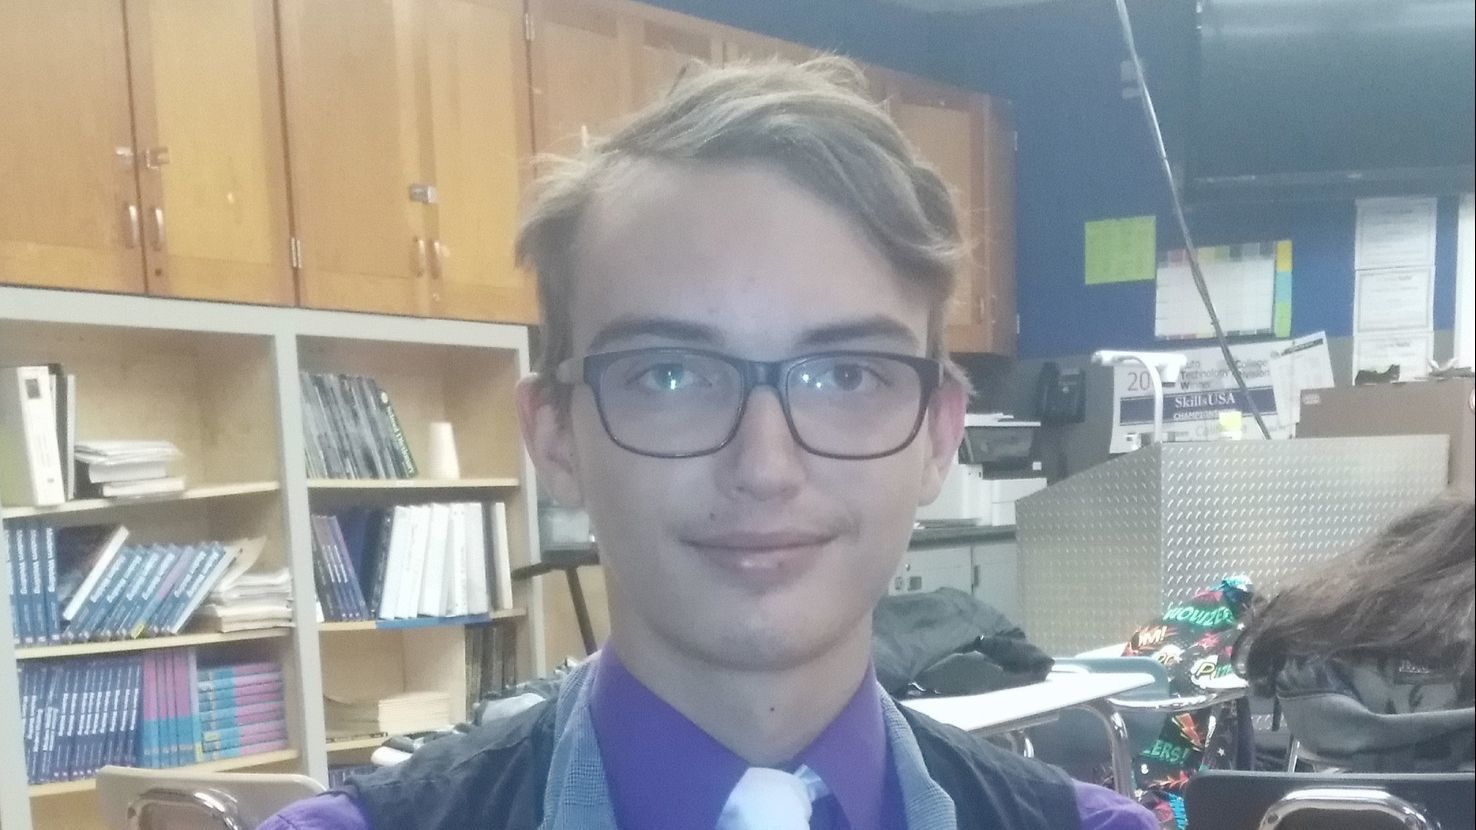 Ramona High sophomore Cody Teichert, 15, plans to use the welding skills he's learning at Ramona High to make and repair cars the way his teacher, Matthew Funkhouser, does.